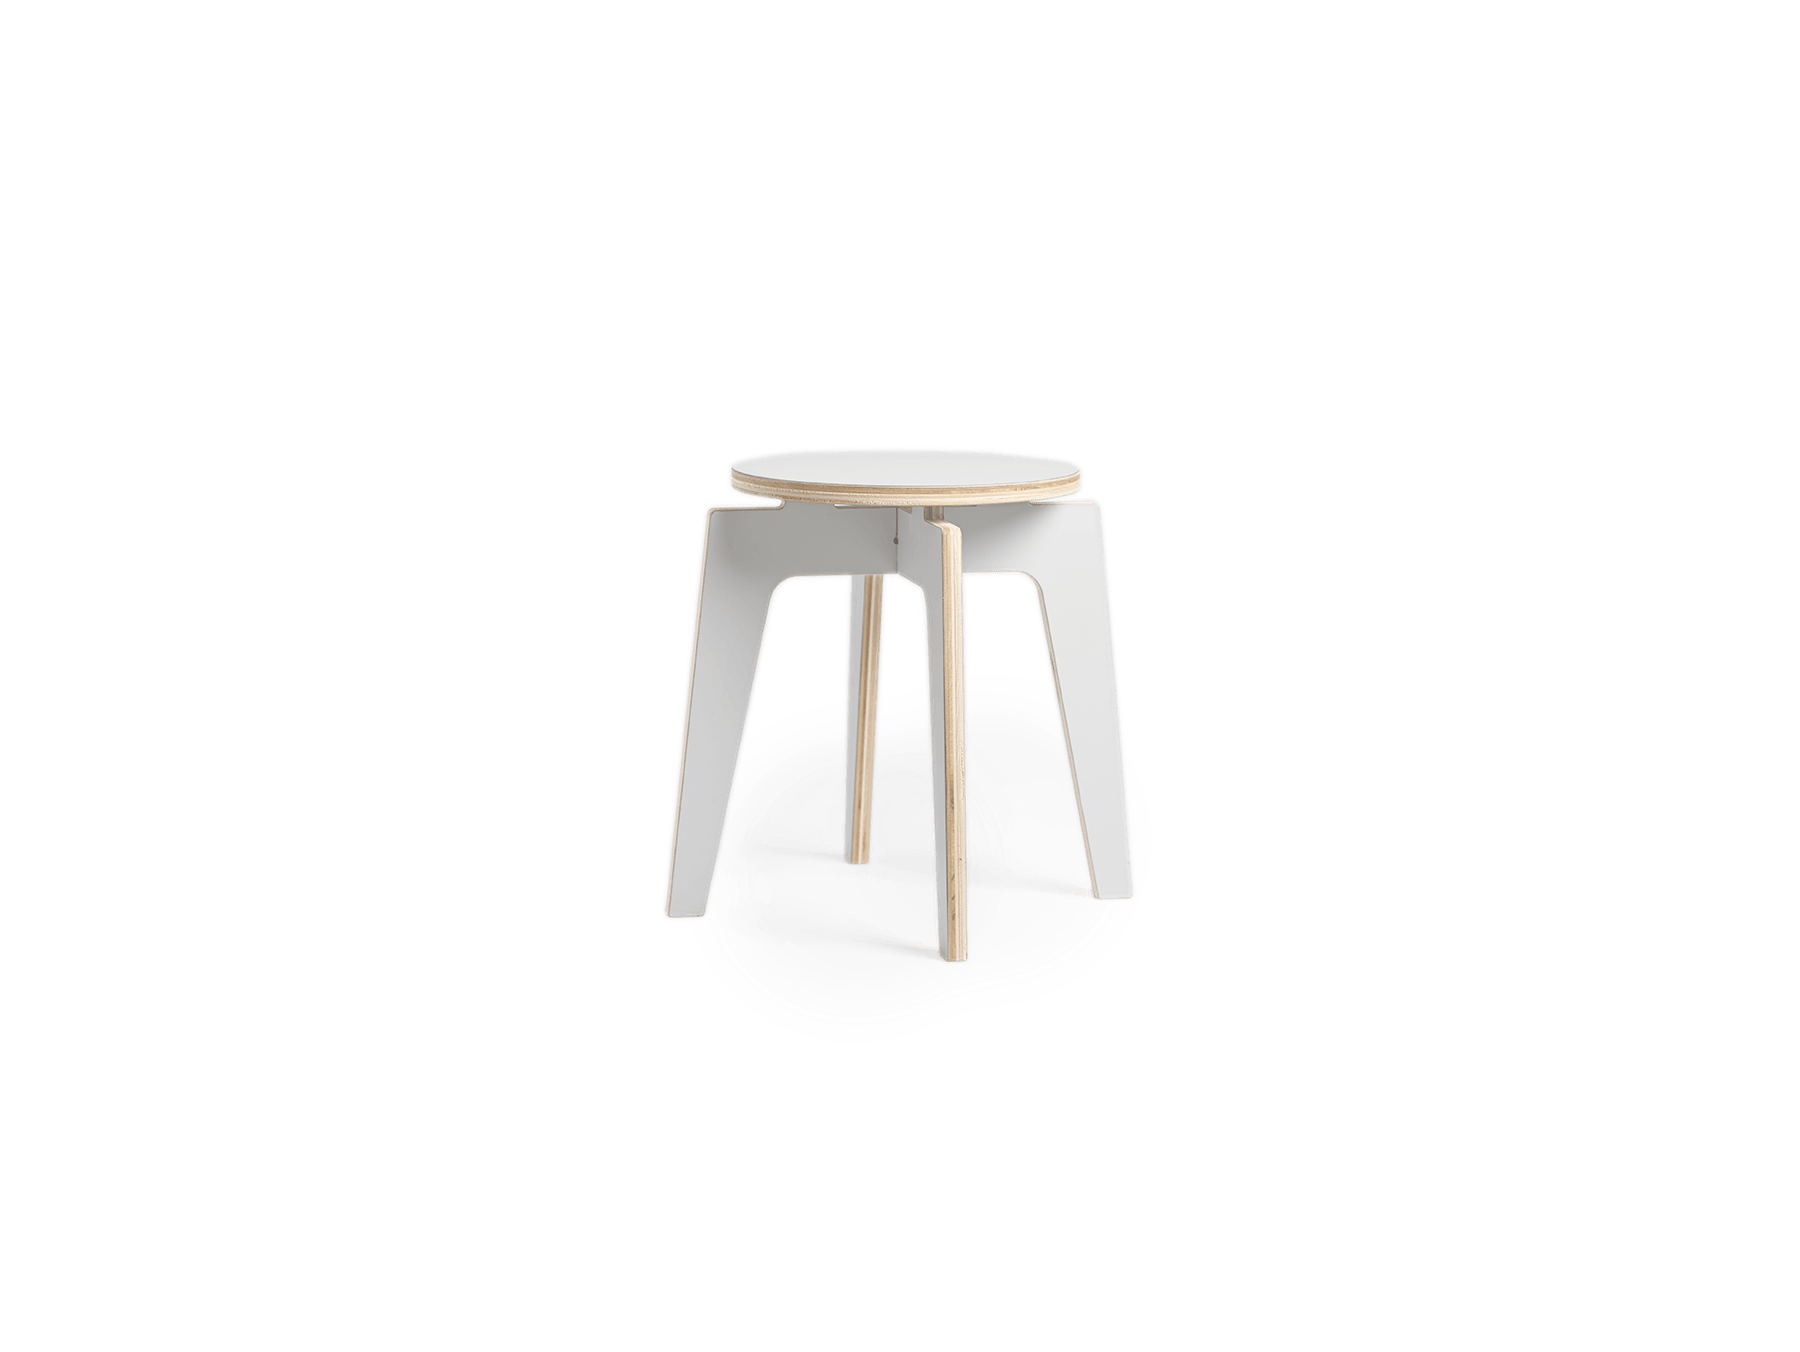 Astonishing Stools Gmtry Best Dining Table And Chair Ideas Images Gmtryco